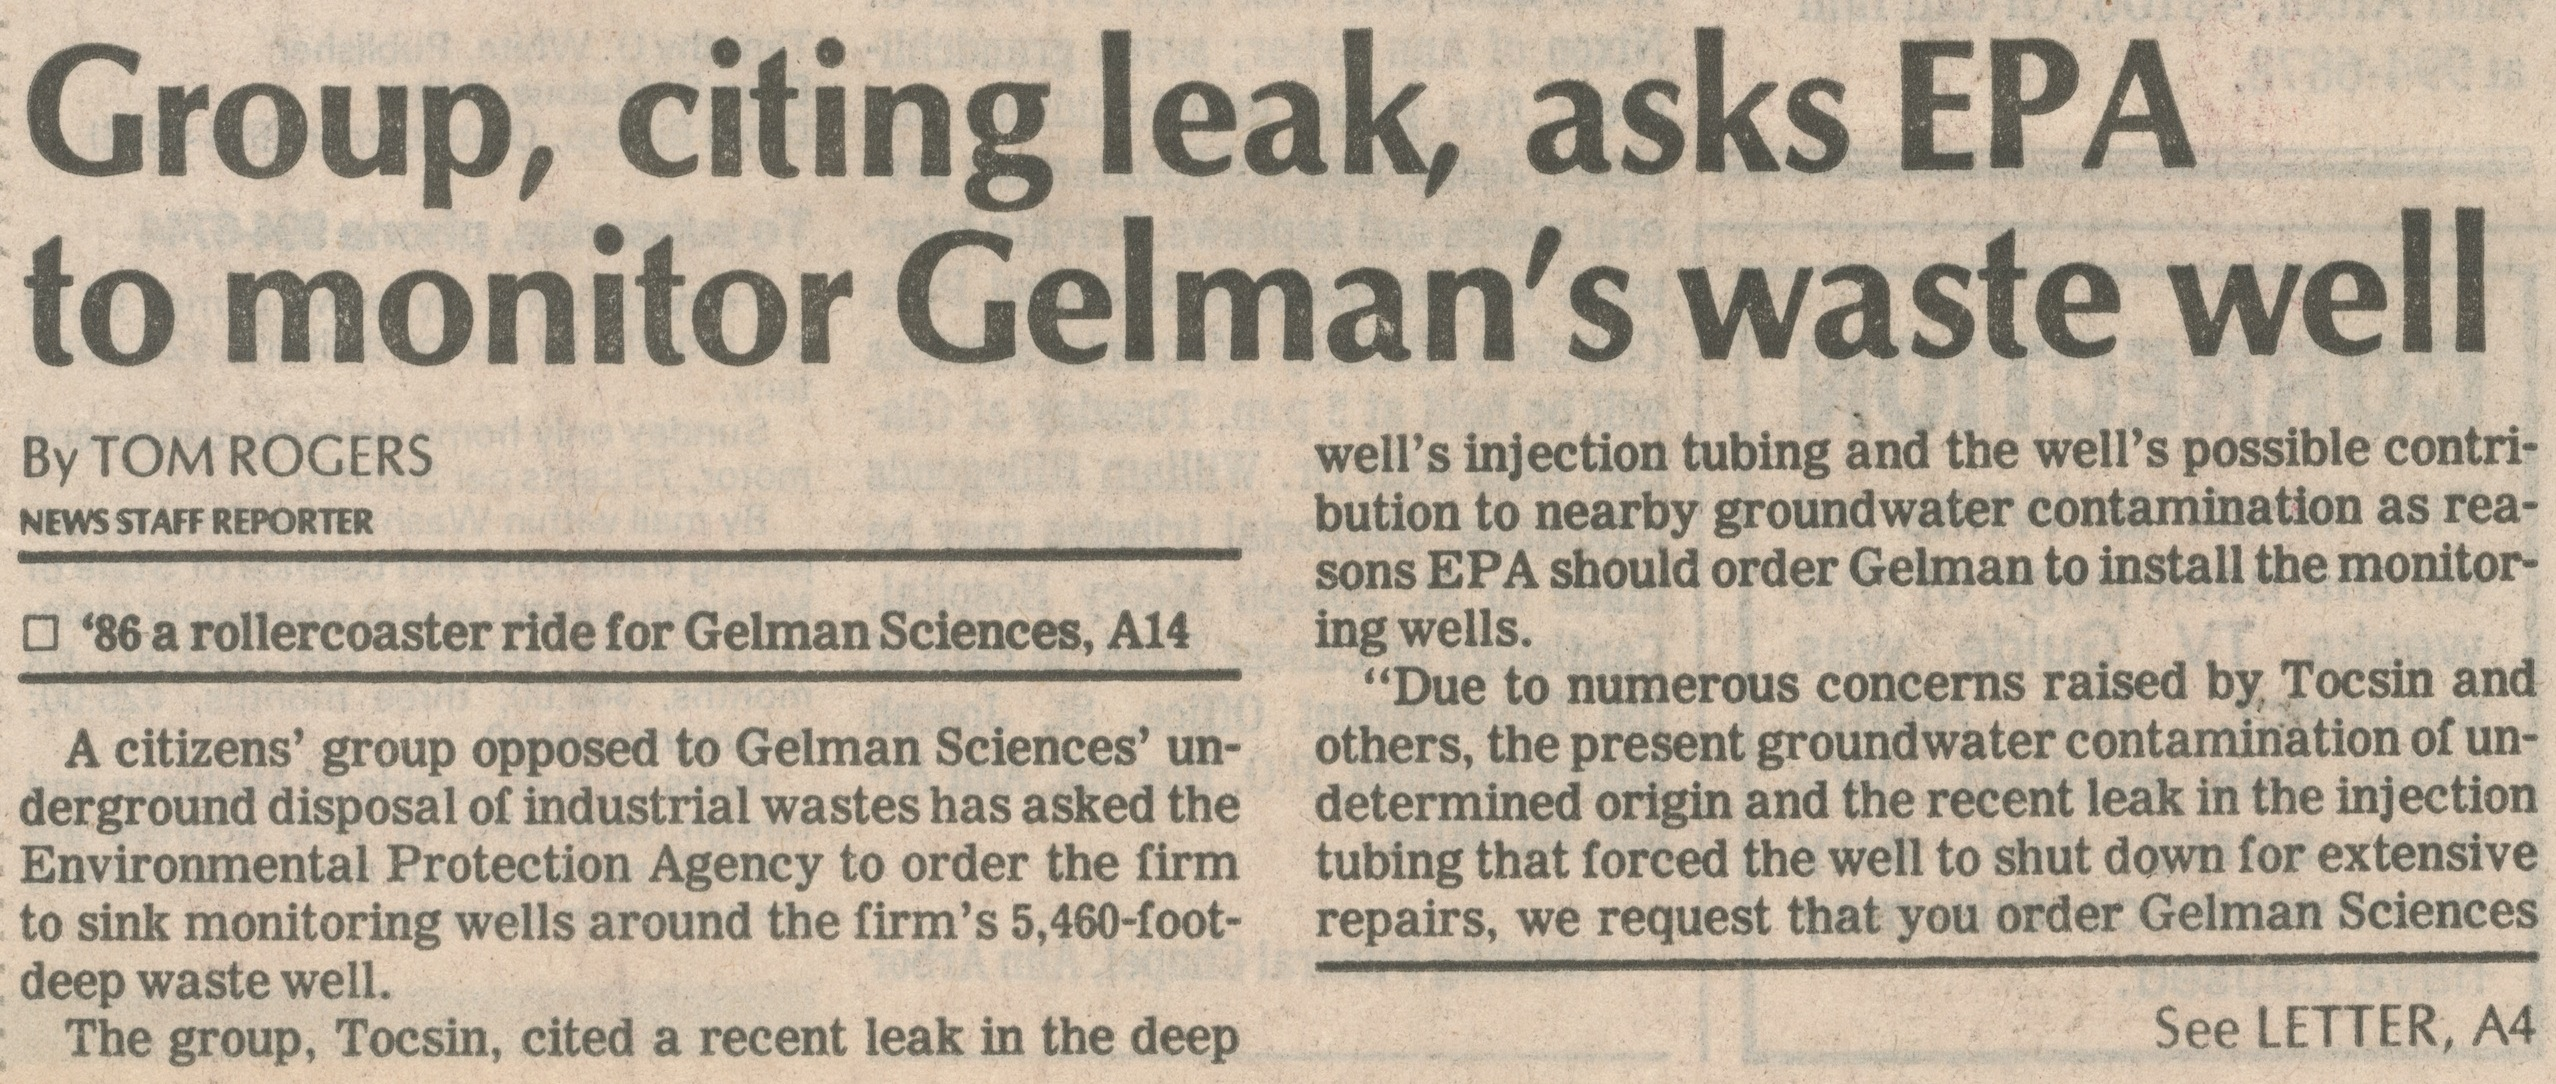 Group, Citing Leak, Asks EPA To Monitor Gelman's Waste Well image